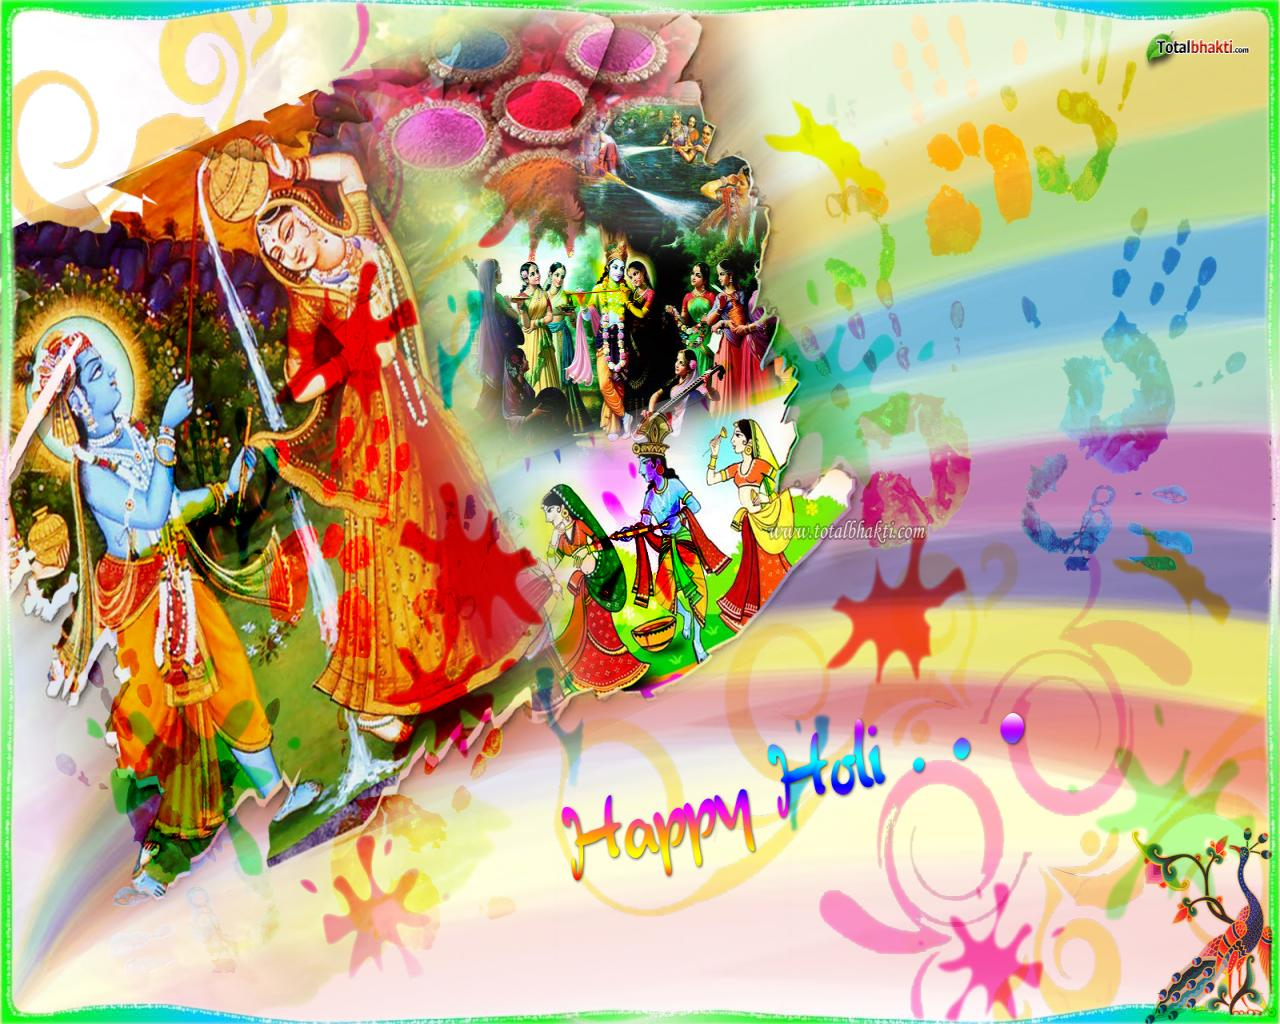 http://2.bp.blogspot.com/-l0okgoeOA1Q/URcU05dXwrI/AAAAAAAAAJc/8it4OsRqCnA/s1600/Happy+Holi+Wishes+Cards+Images-5+holicardsimages.blogspot.com.jpg